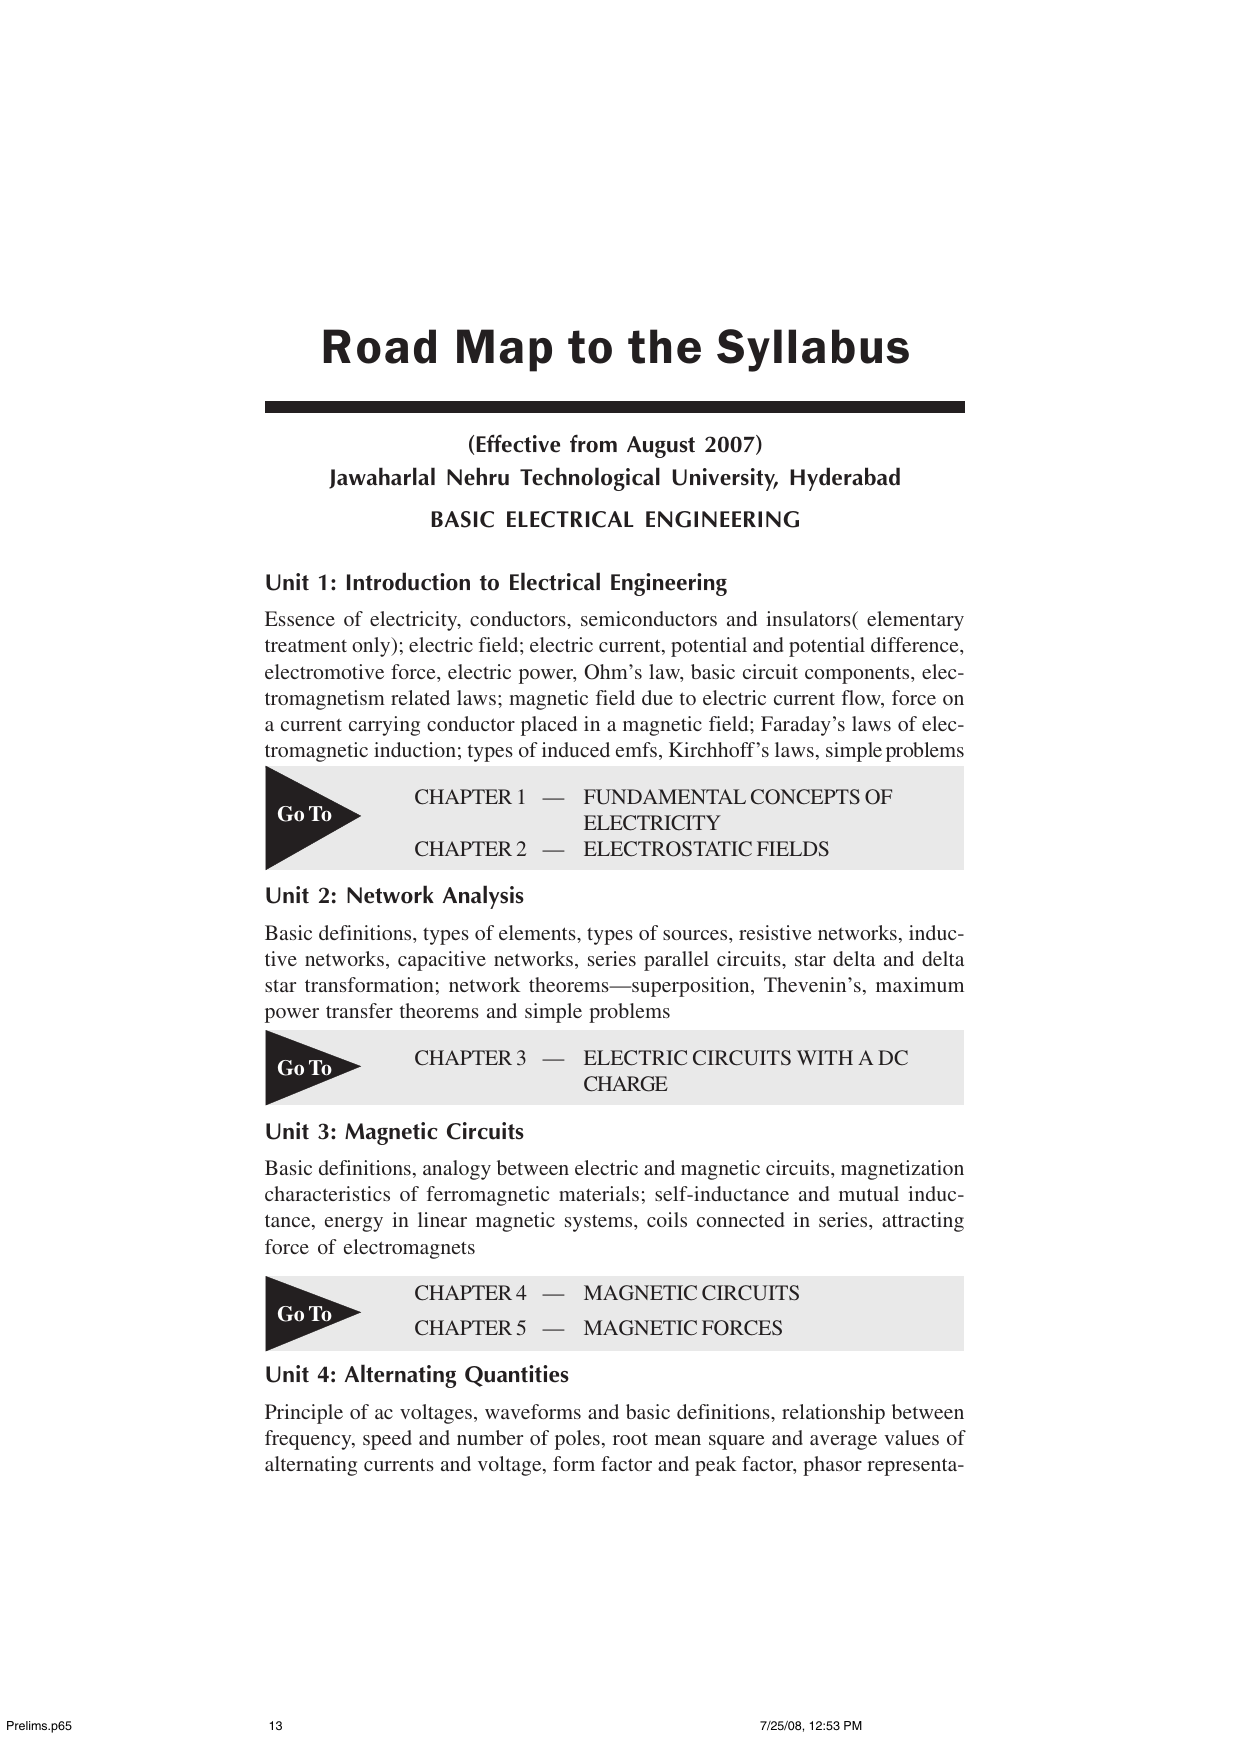 Roadmap_to_the_Syllabus